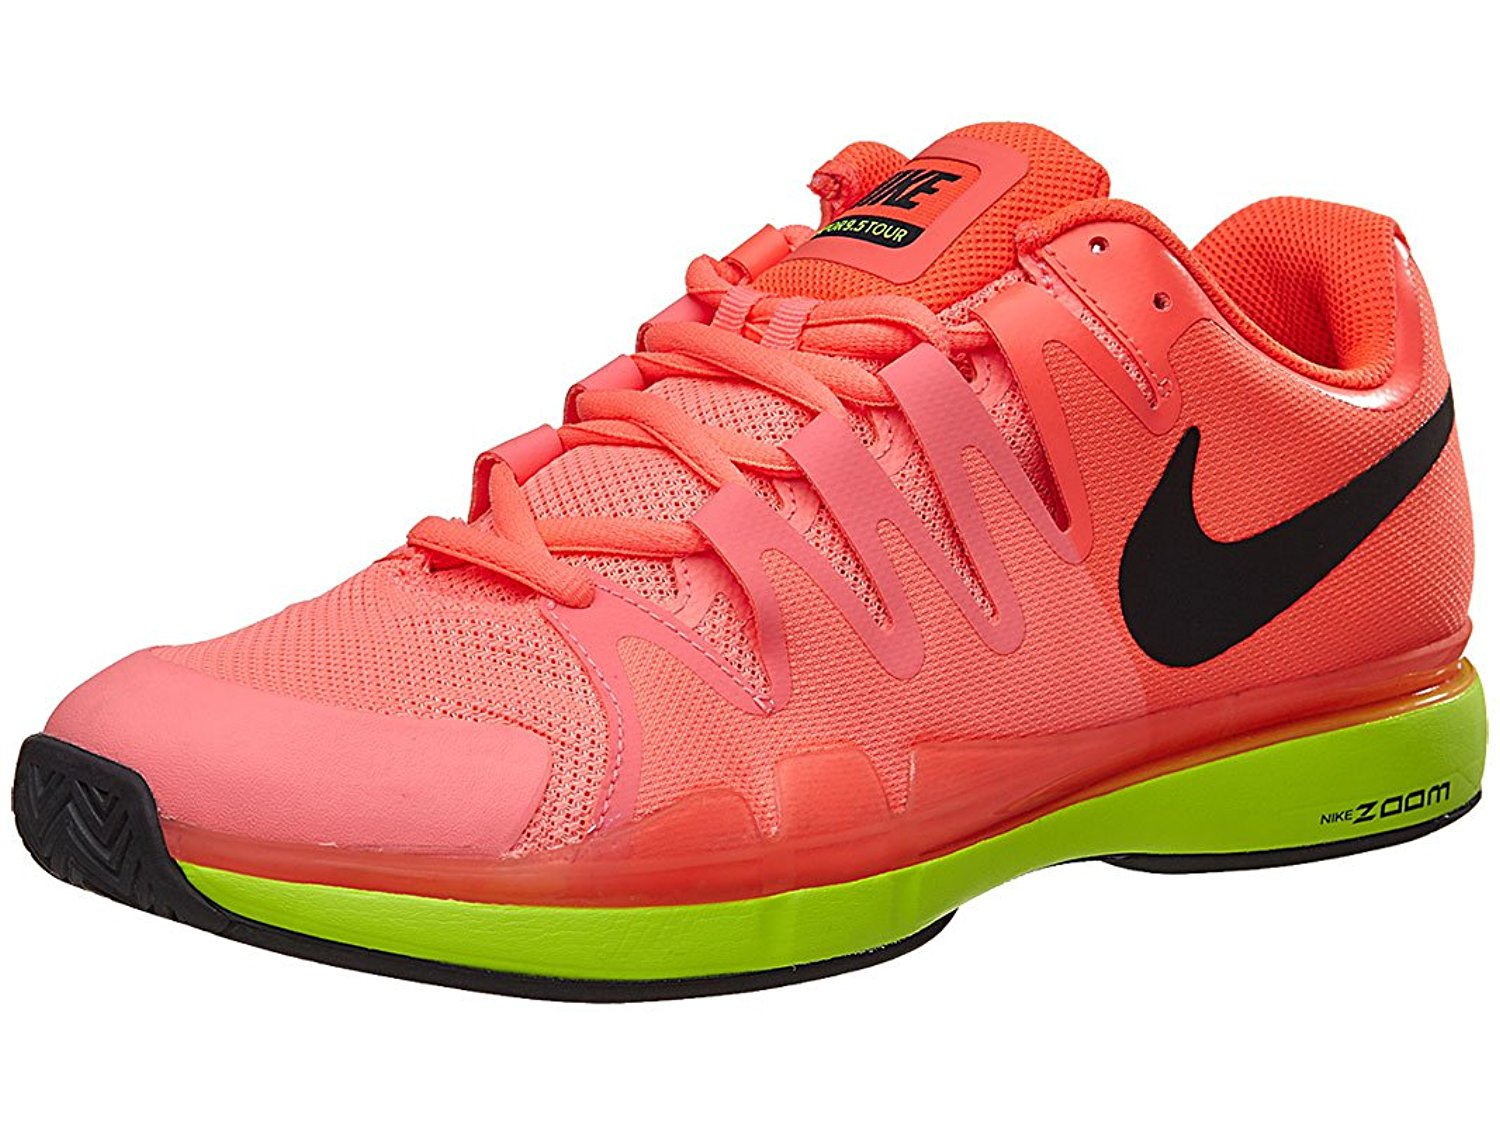 2af7fc9b4f42 Buy Nike Zoom Vapor 9.5 Tour Hyper Orange Black Volt Womens Tennis ...